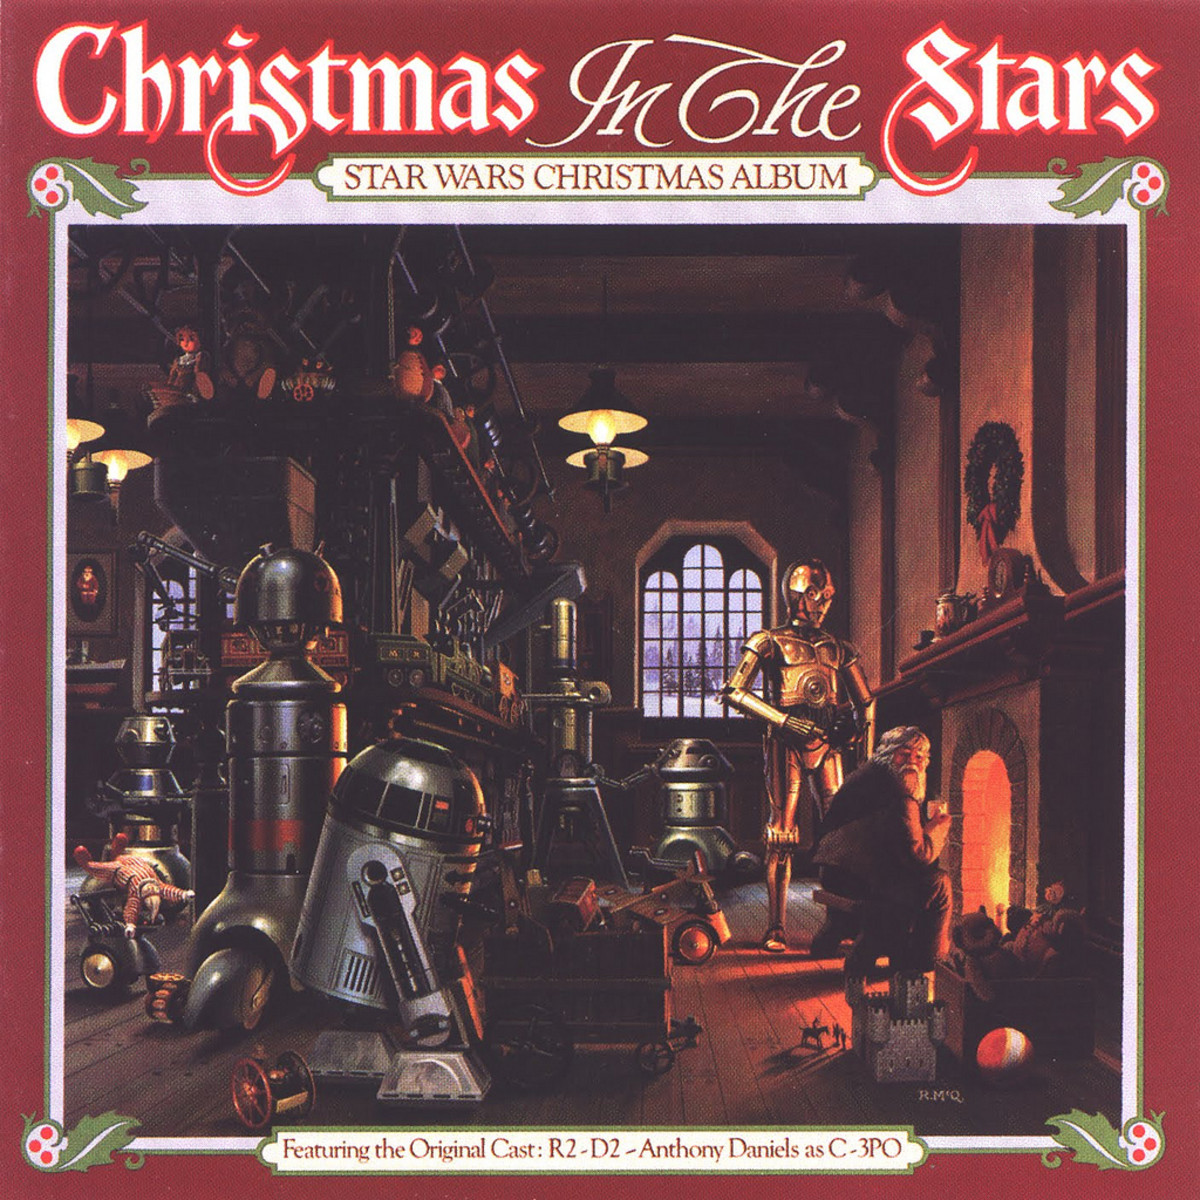 "MECO ""Christmas In The Stars: Star Wars Christmas"" Album RSO Records RS-1-3093 12"" LP Vinyl Record, US Pressing (1980)"